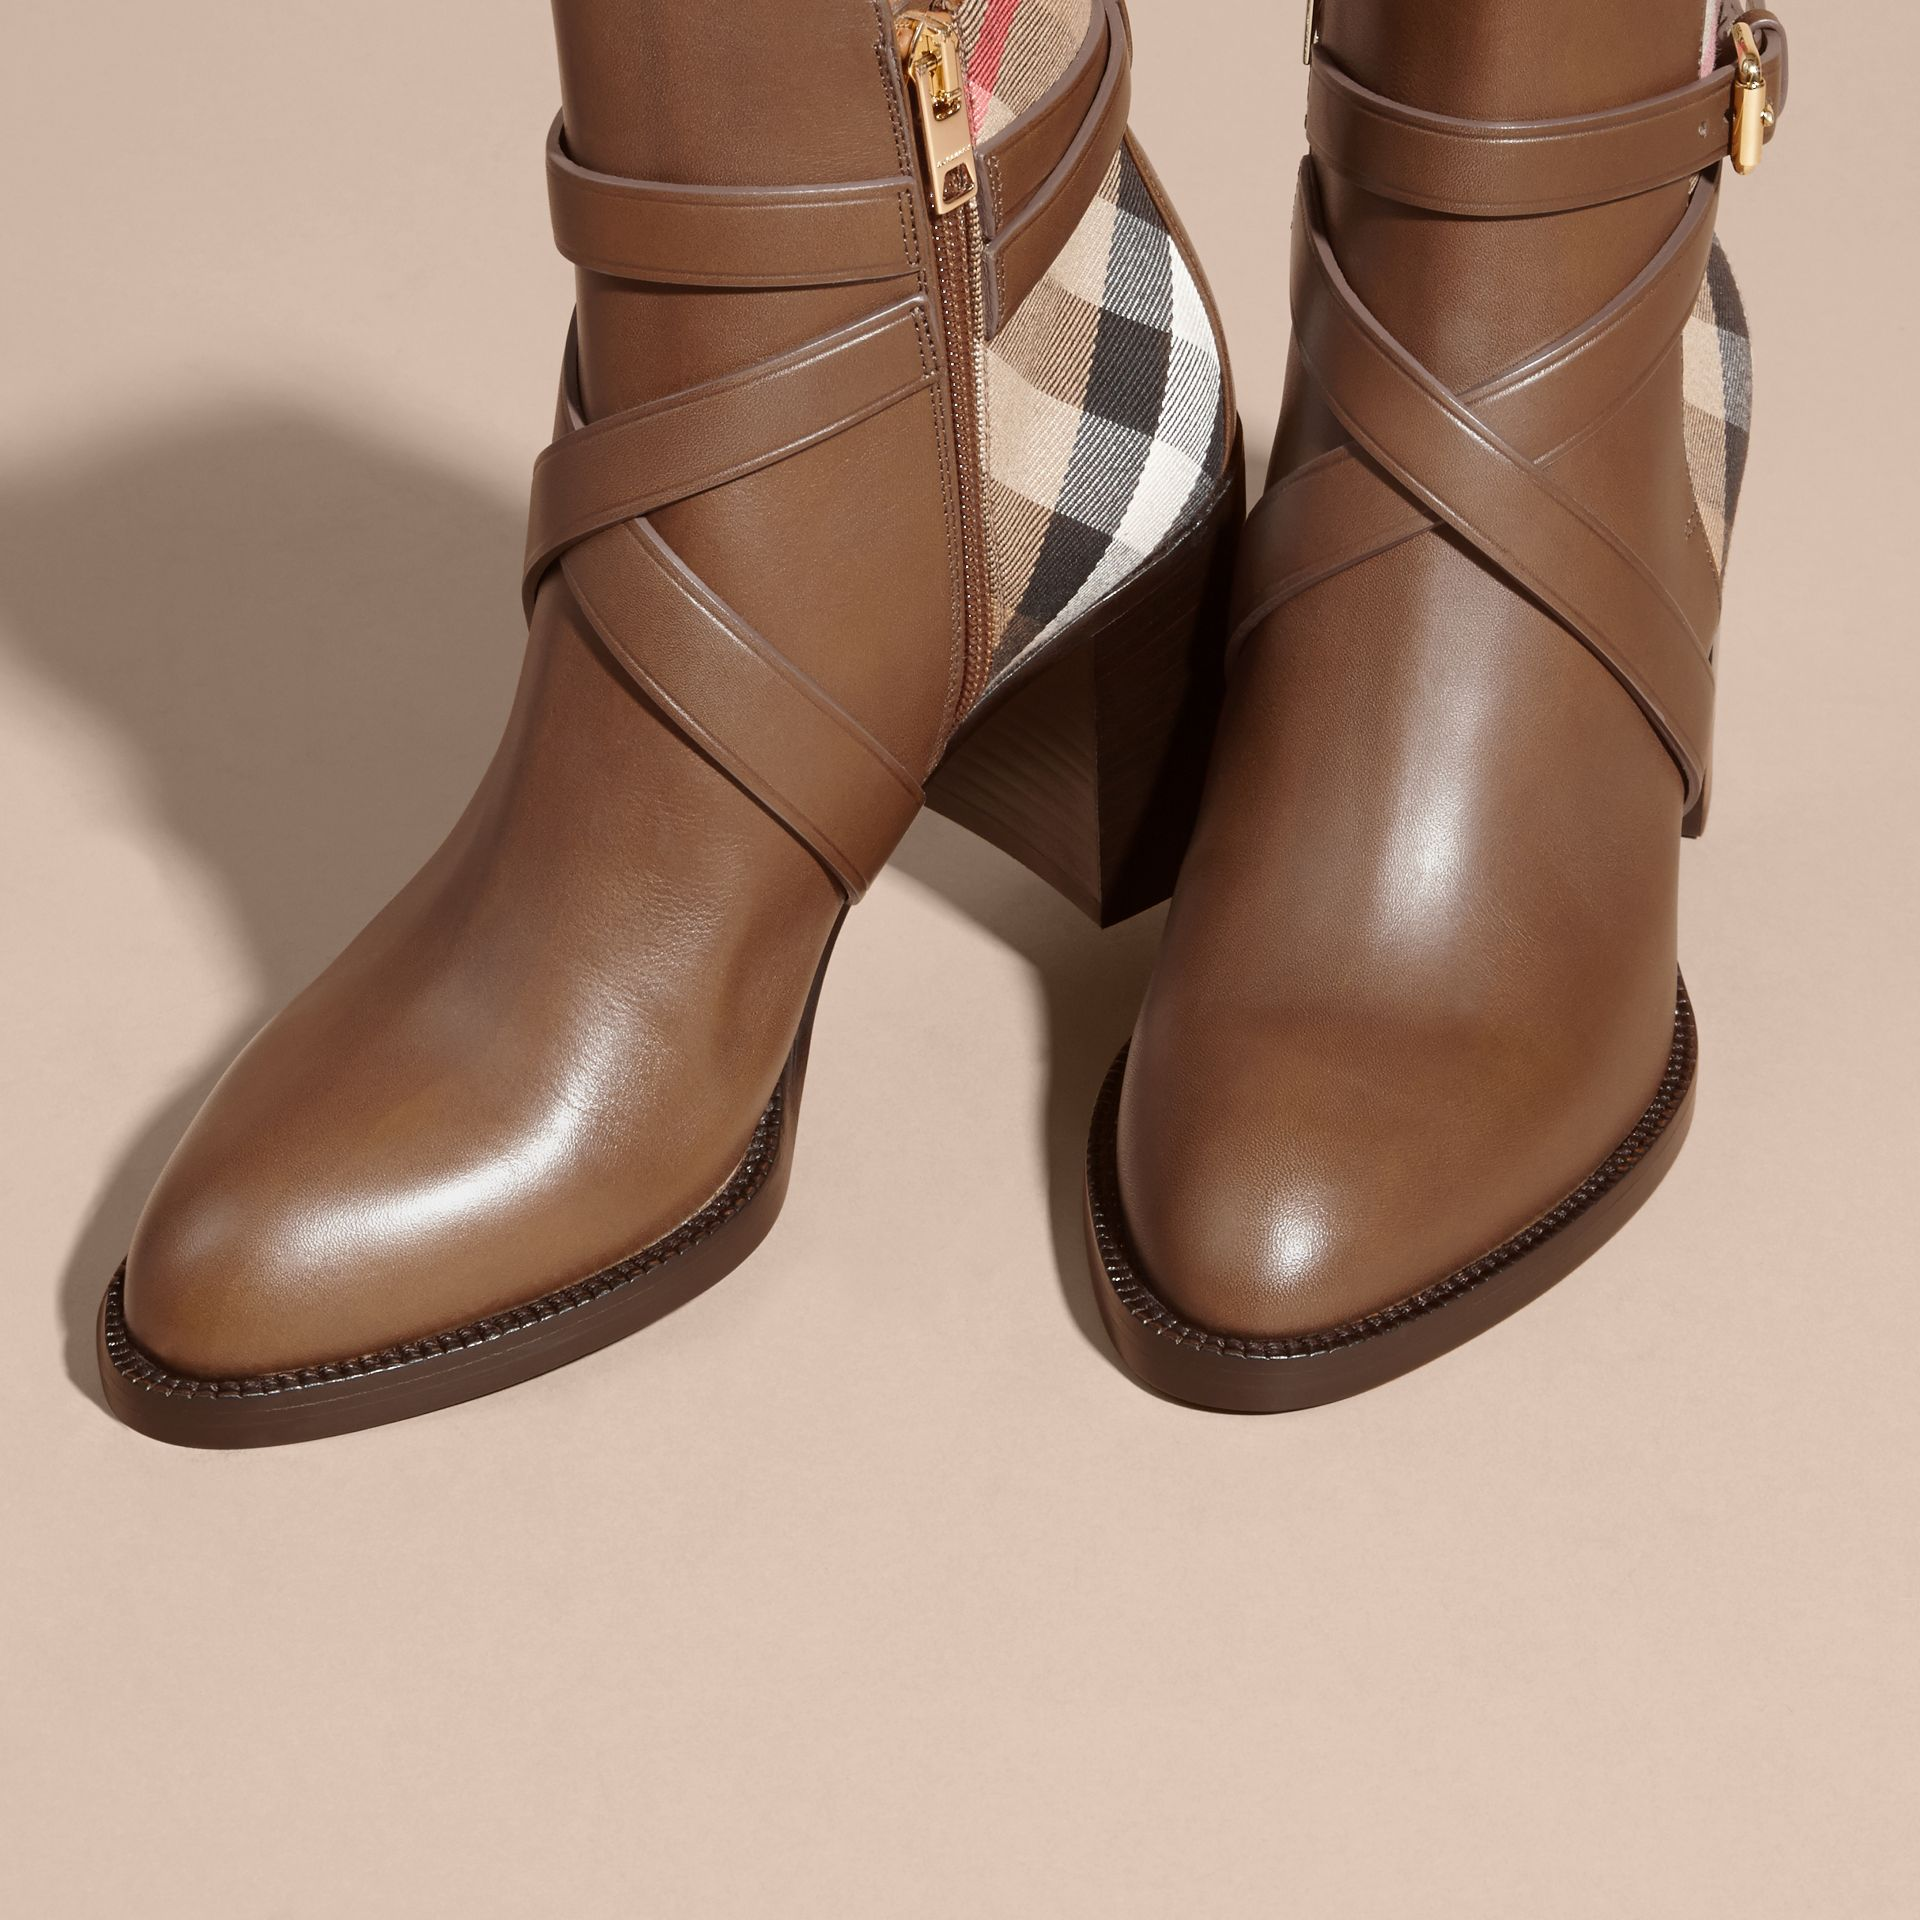 House Check and Leather Ankle Boots Bright Camel - gallery image 3